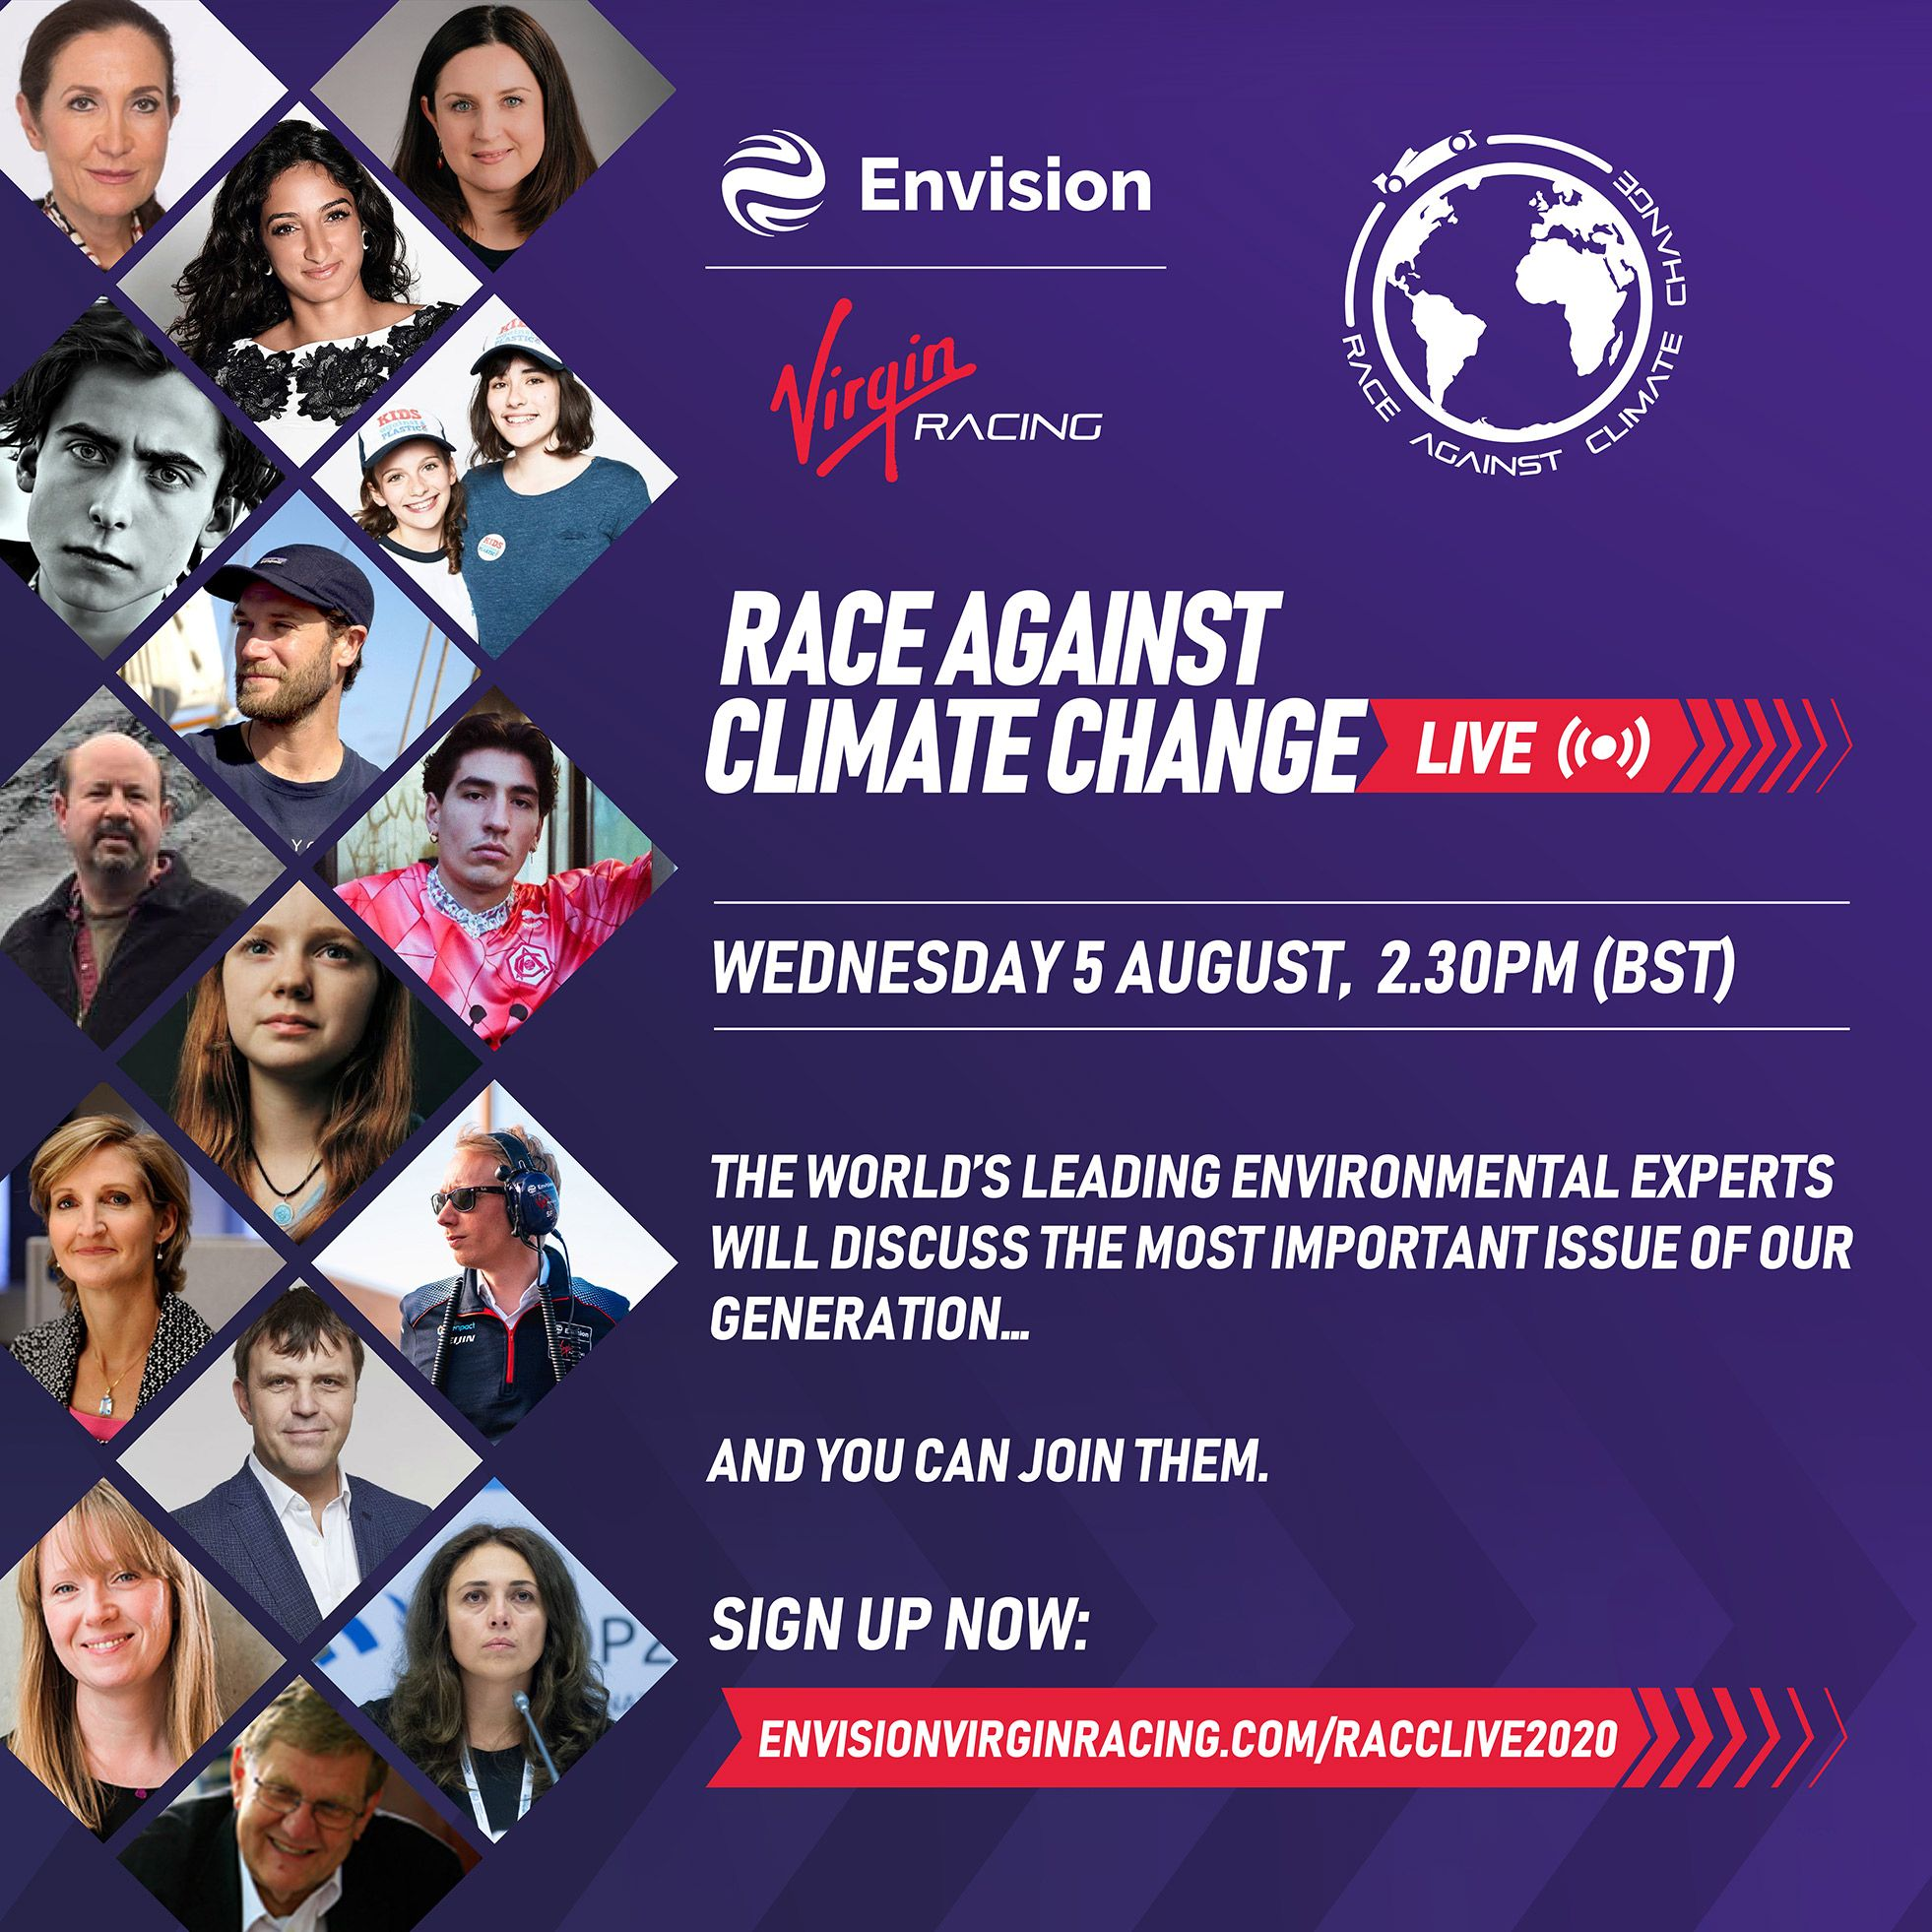 Envision Virgin Racing Race Against Climate Change Live